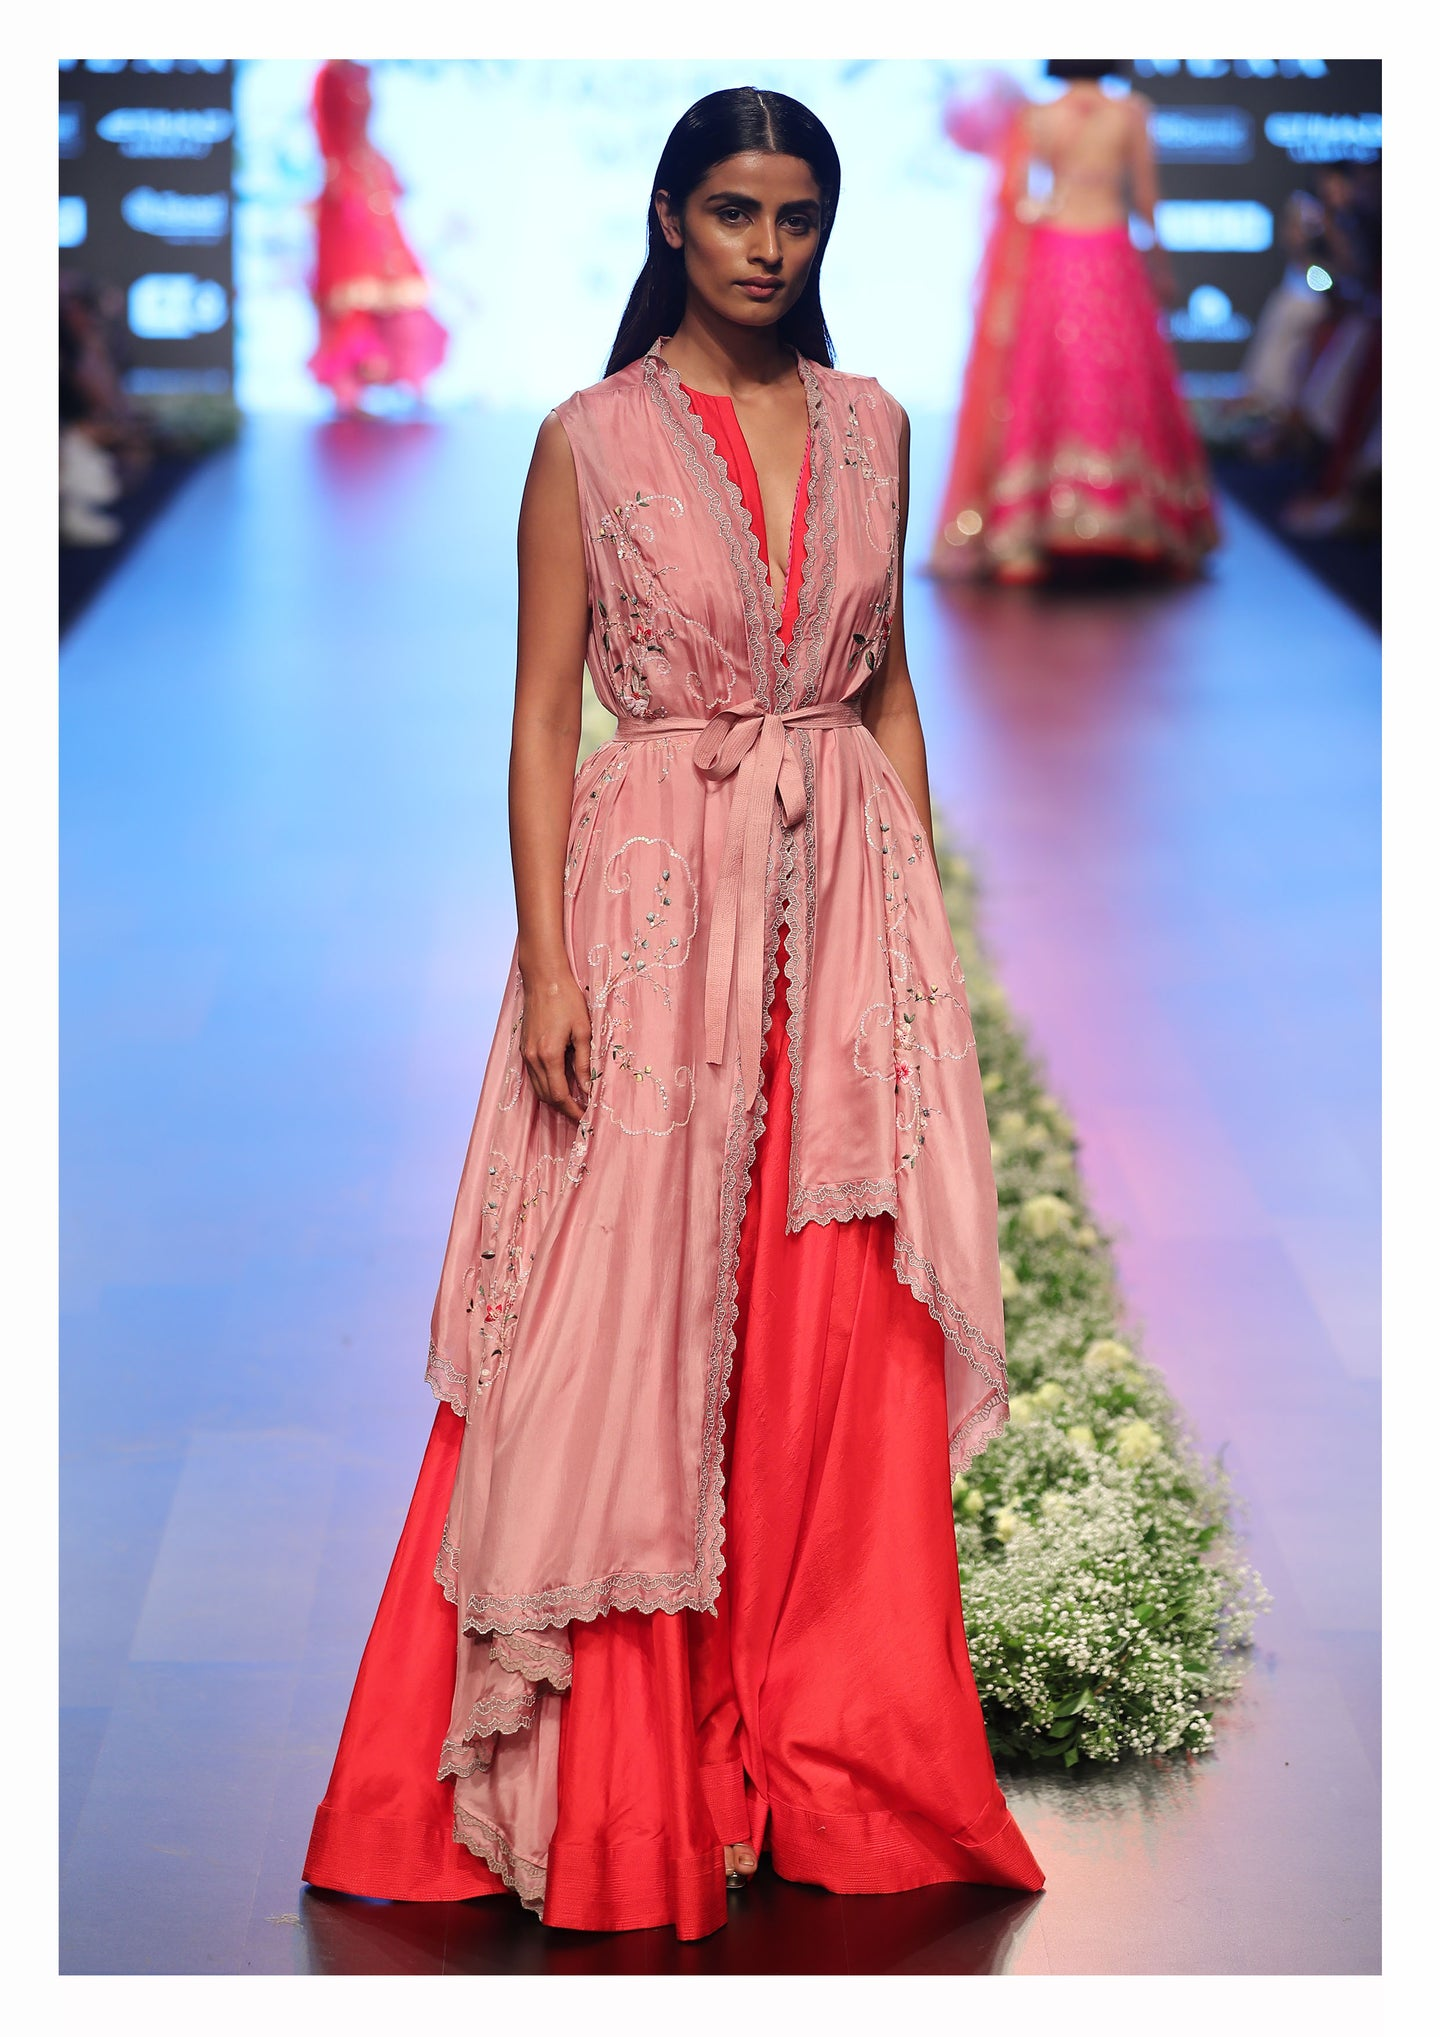 Red and Pink Flared Maxi Dress with Cape - The Grand Trunk